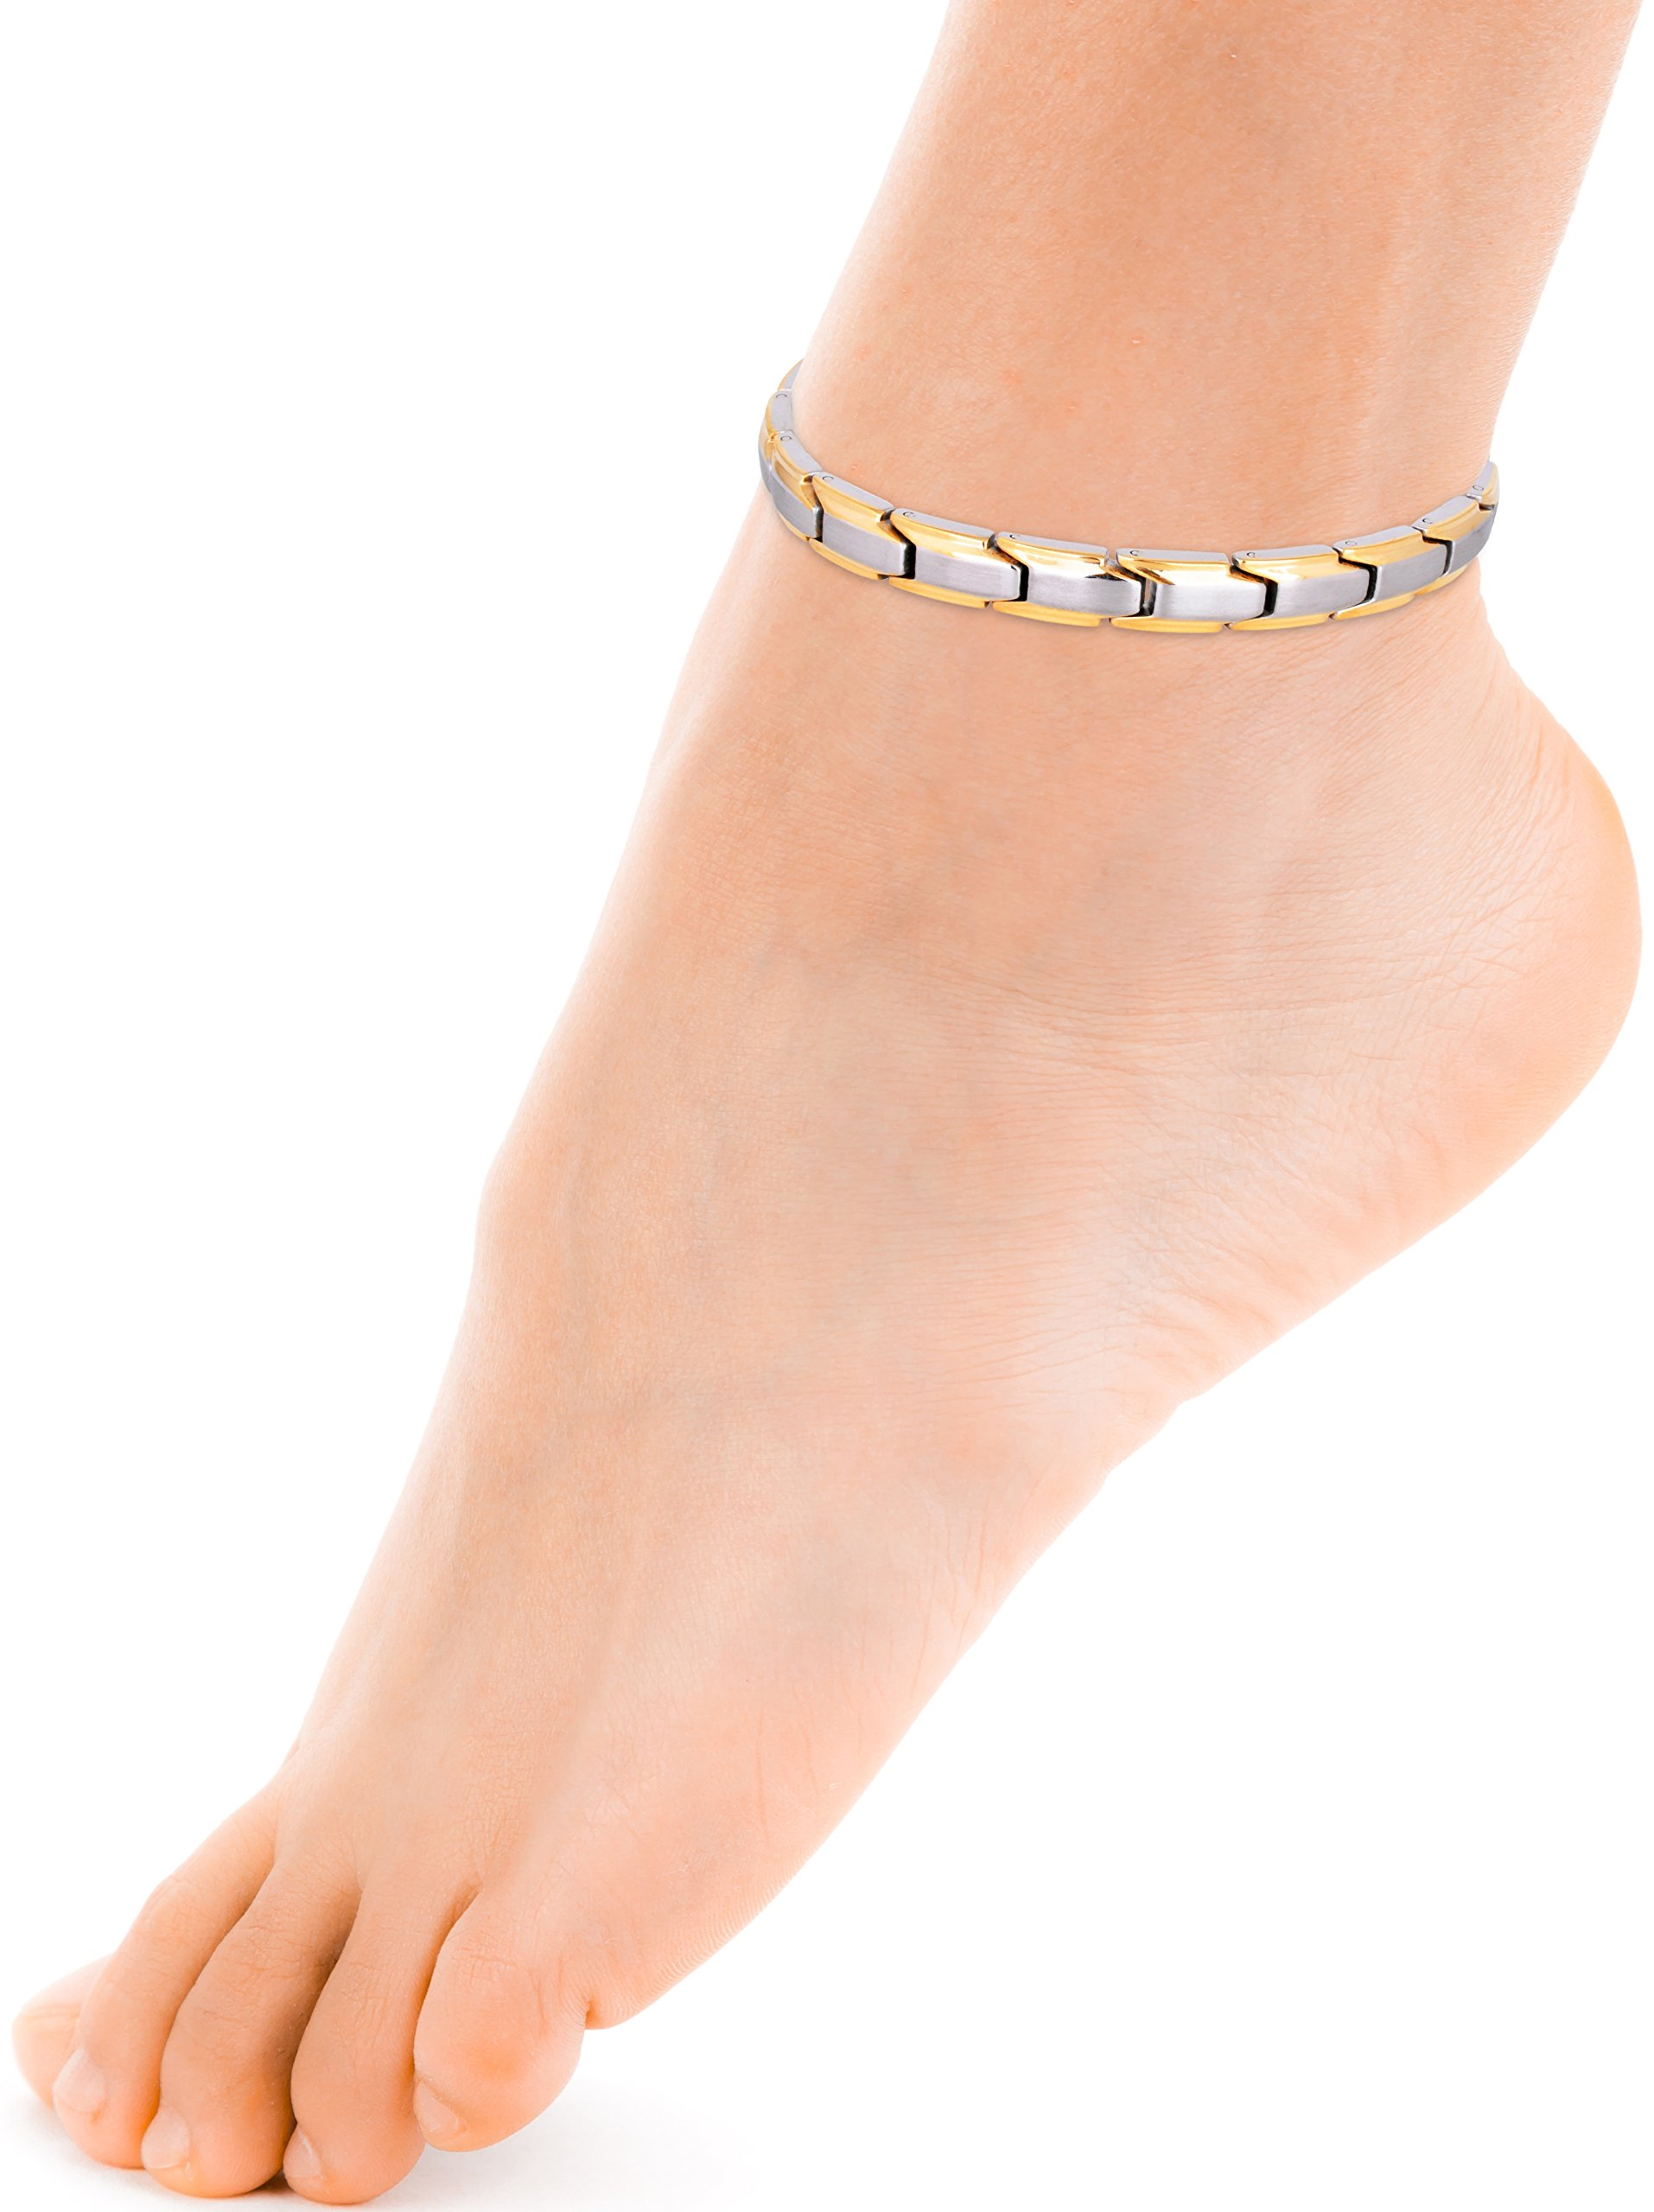 every day why fashion elle accessory zoe anklets you summer shopping can womens gold wear the is anklet of bracelet ankle